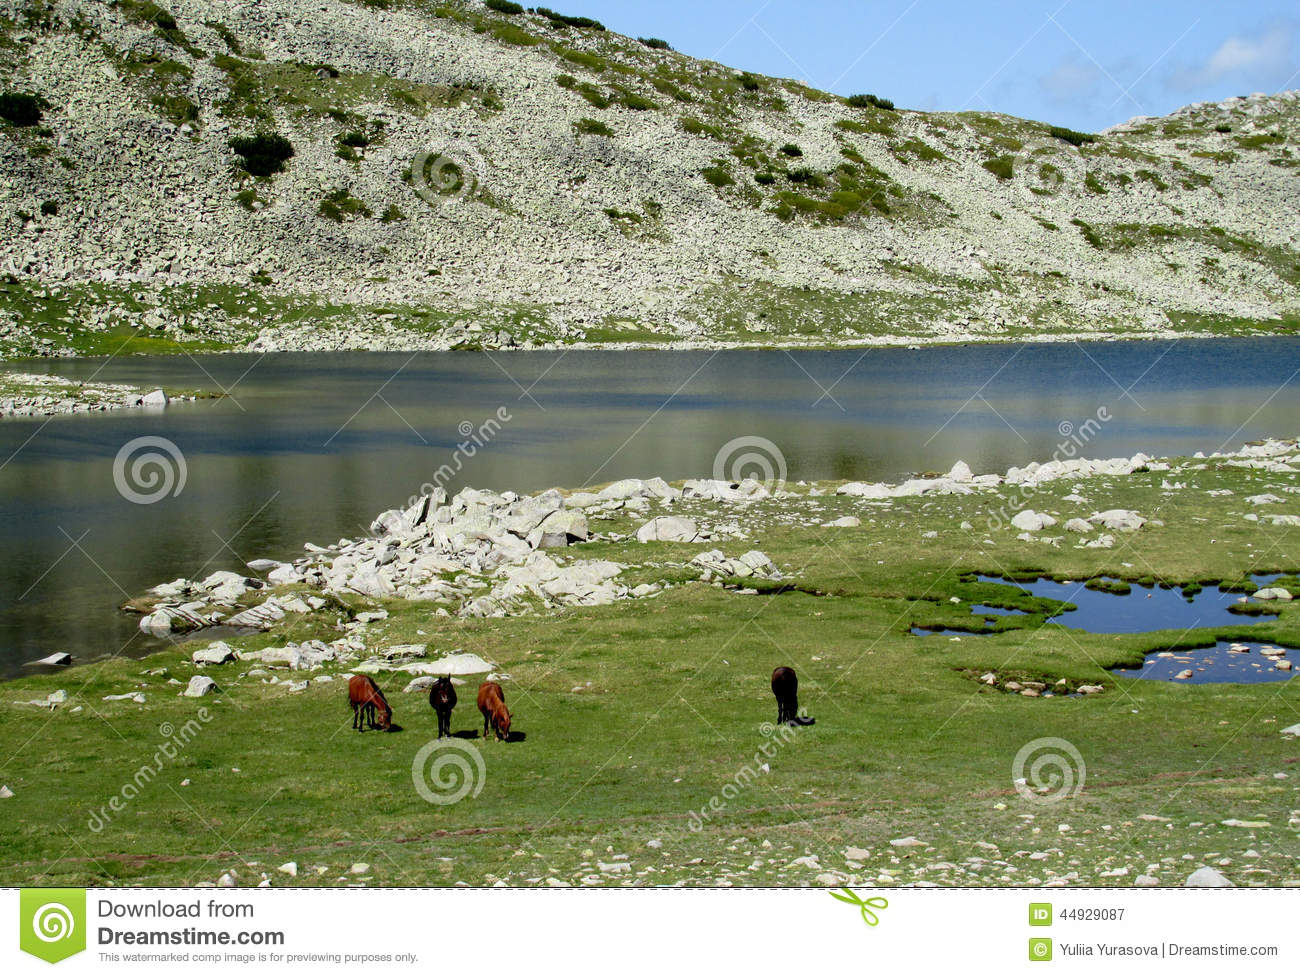 In bulgaria deep blue lakes and gray rock summit during the sunny day